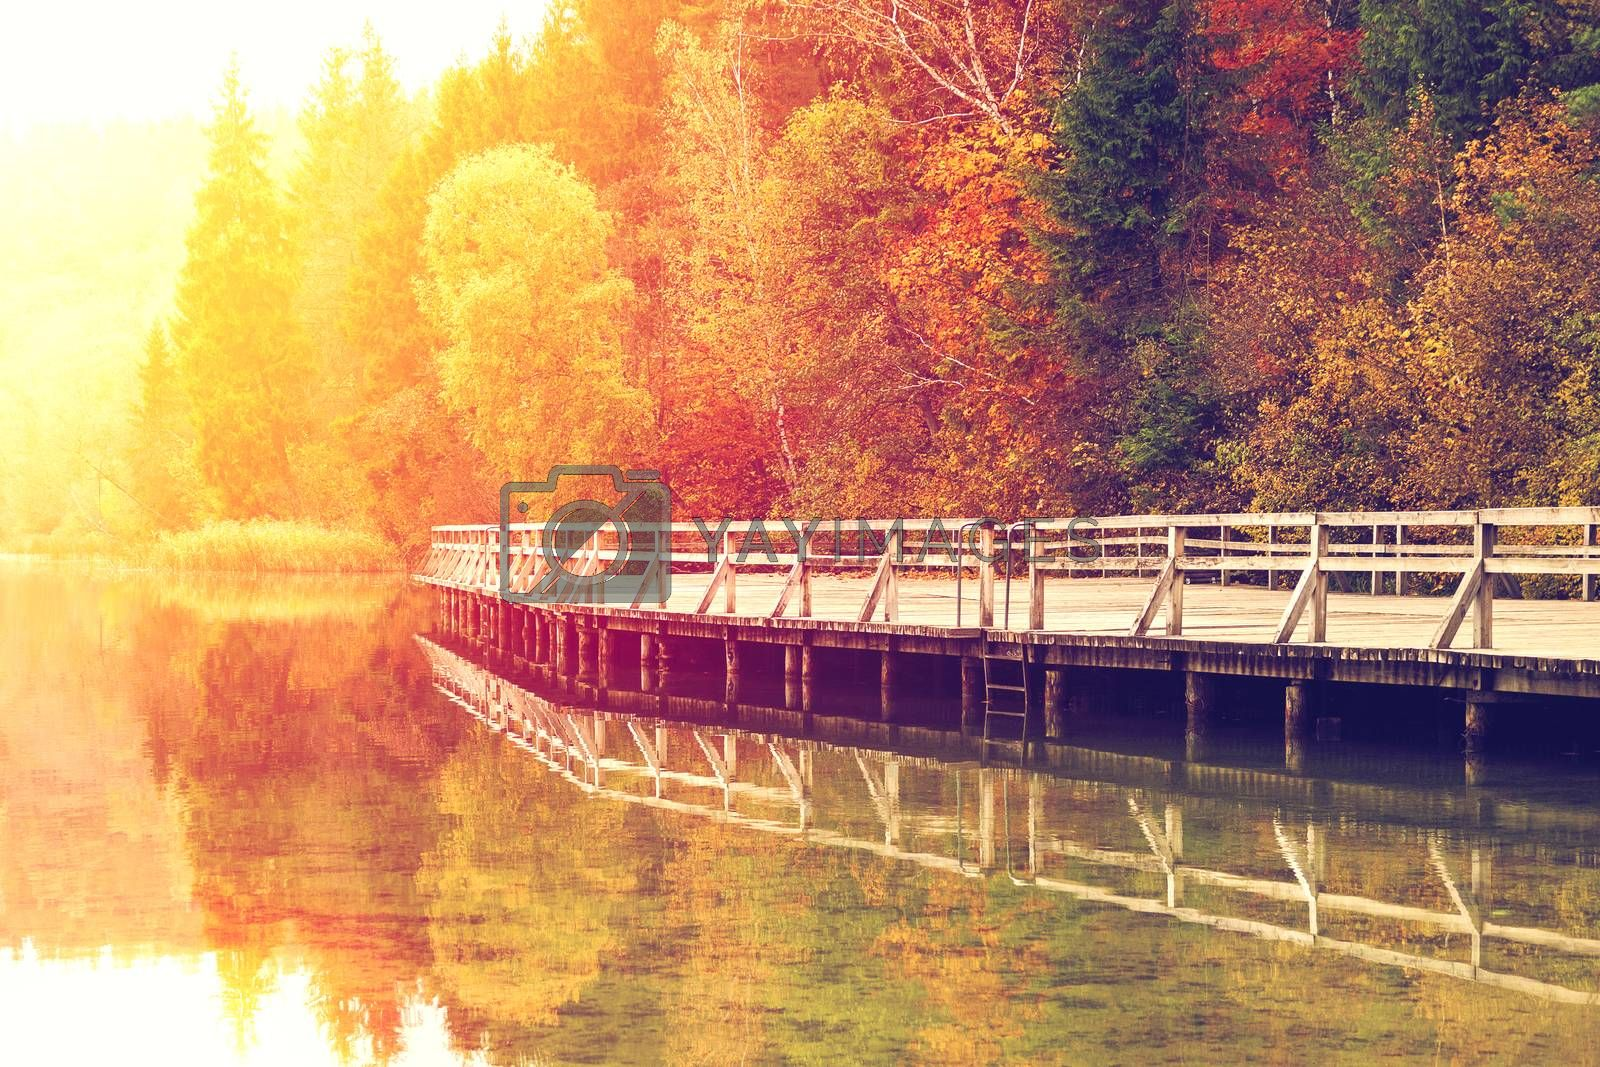 Yellow sun glow on autumn landscape with colorful trees and wooden pier reflected in the lake water